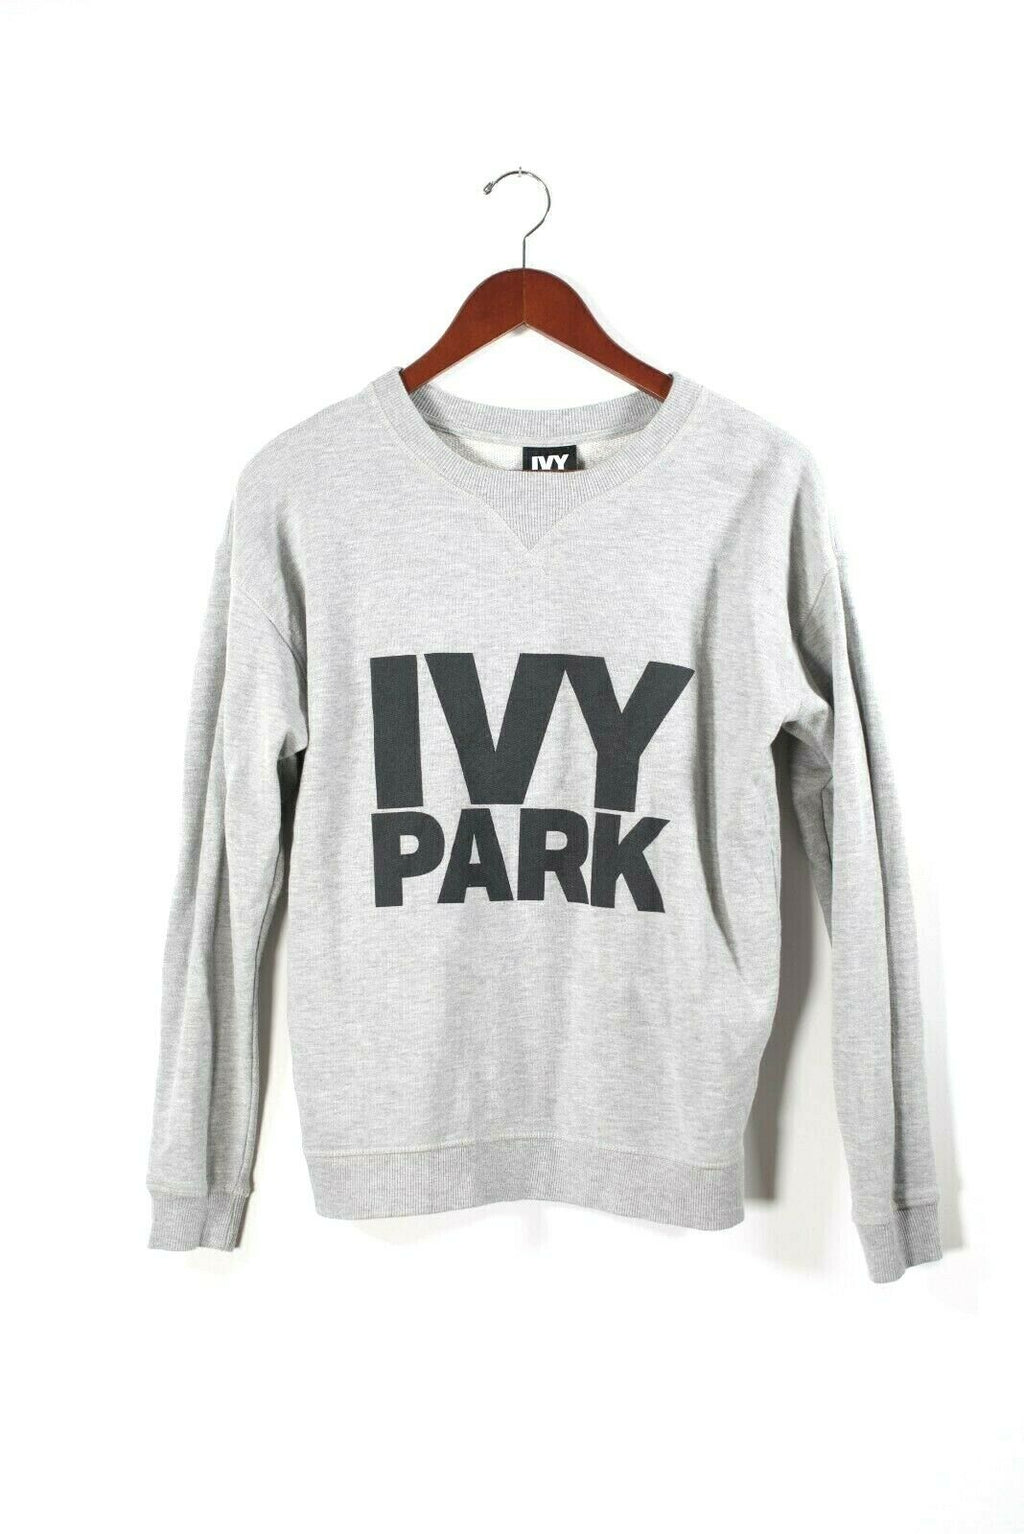 Ivy Park Womens Size Small Gray Sweatshirt Pullover Logo Graphic Sweater Shirt